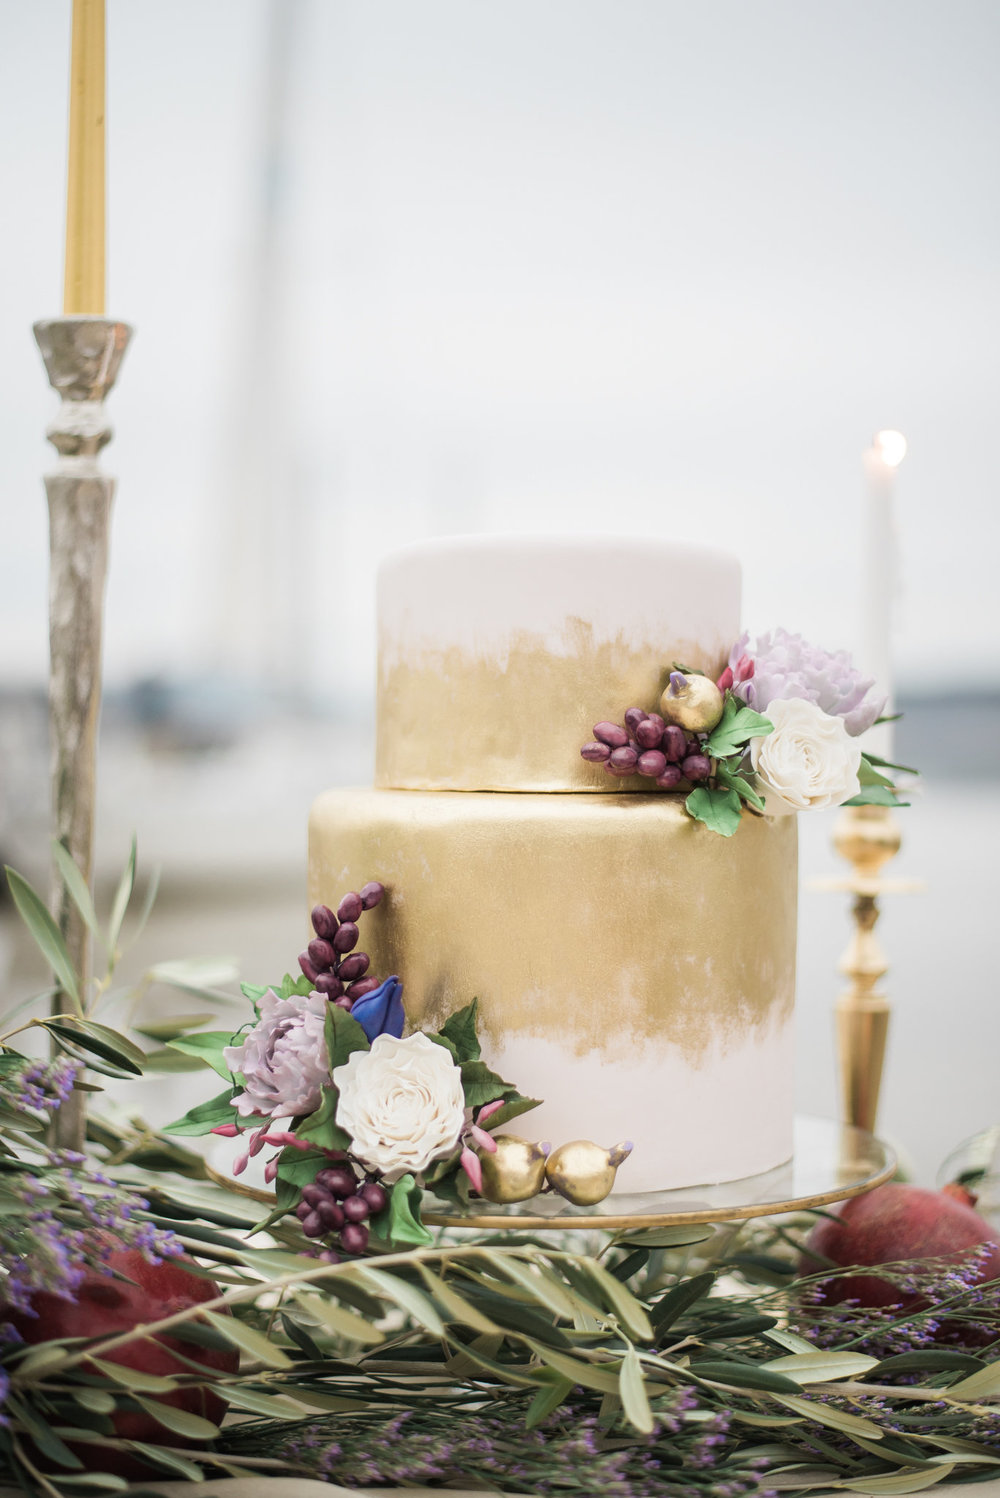 Gia's Cakes | Eric & Jamie Photography | Handley Breaux Designs